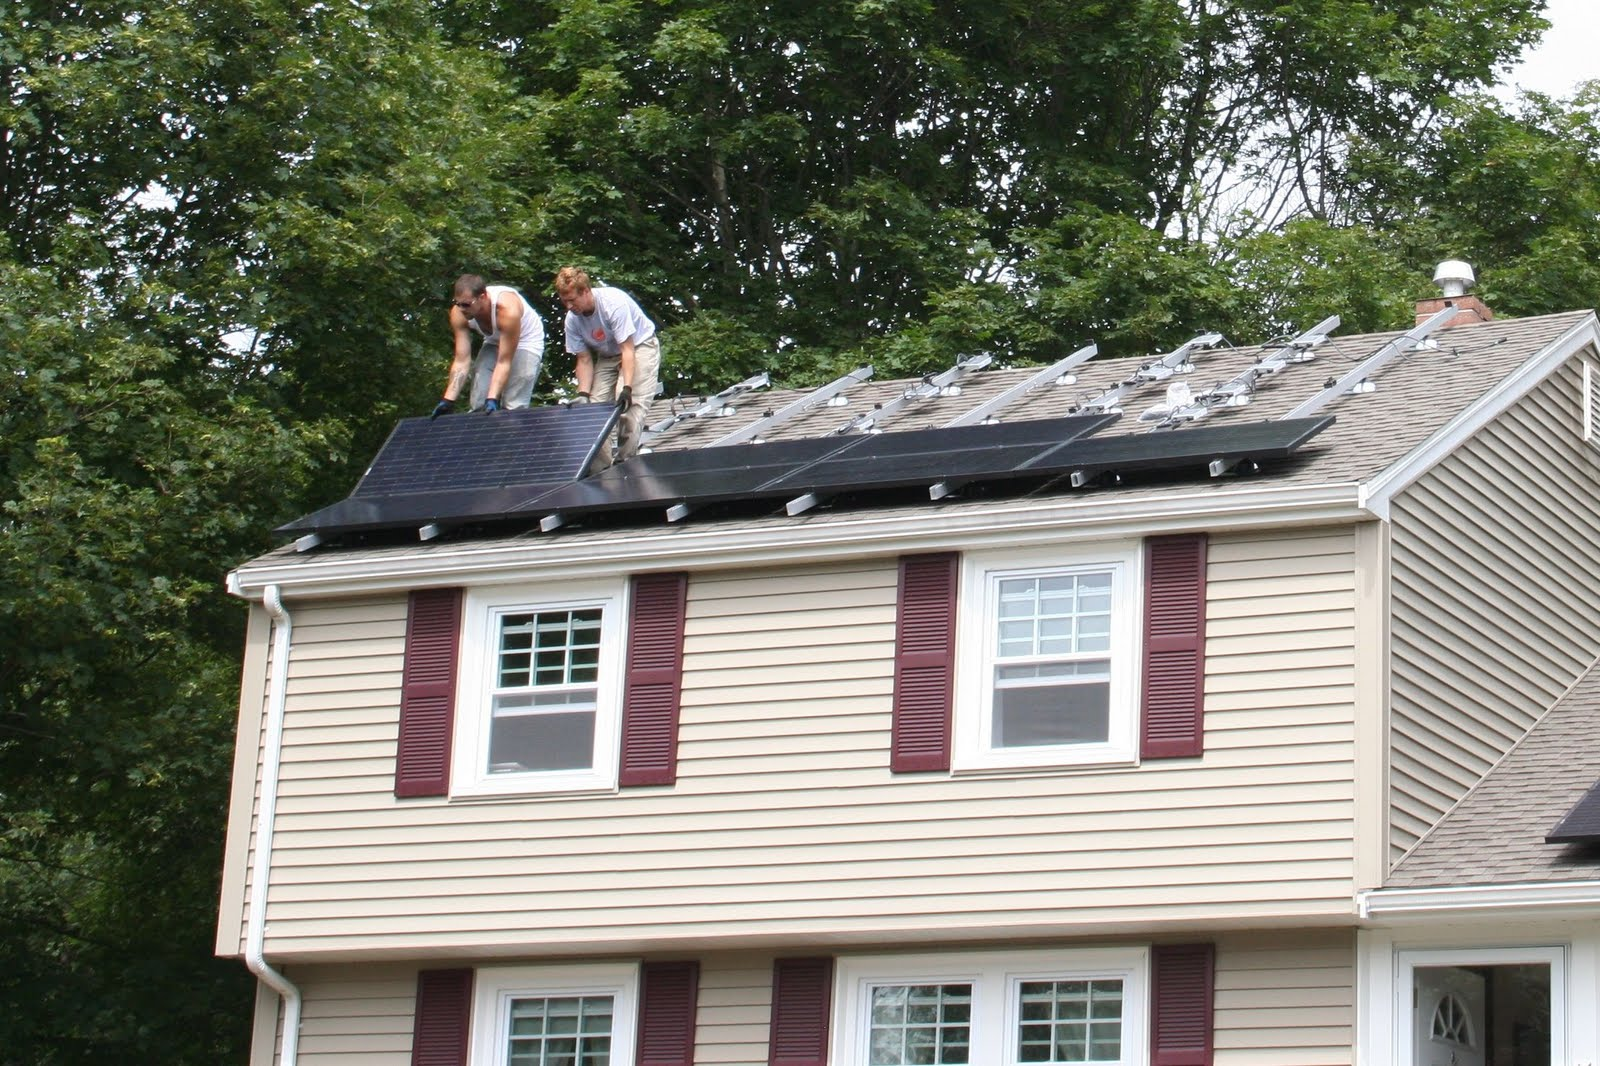 Worked in Massachusetts install residential solar panels.